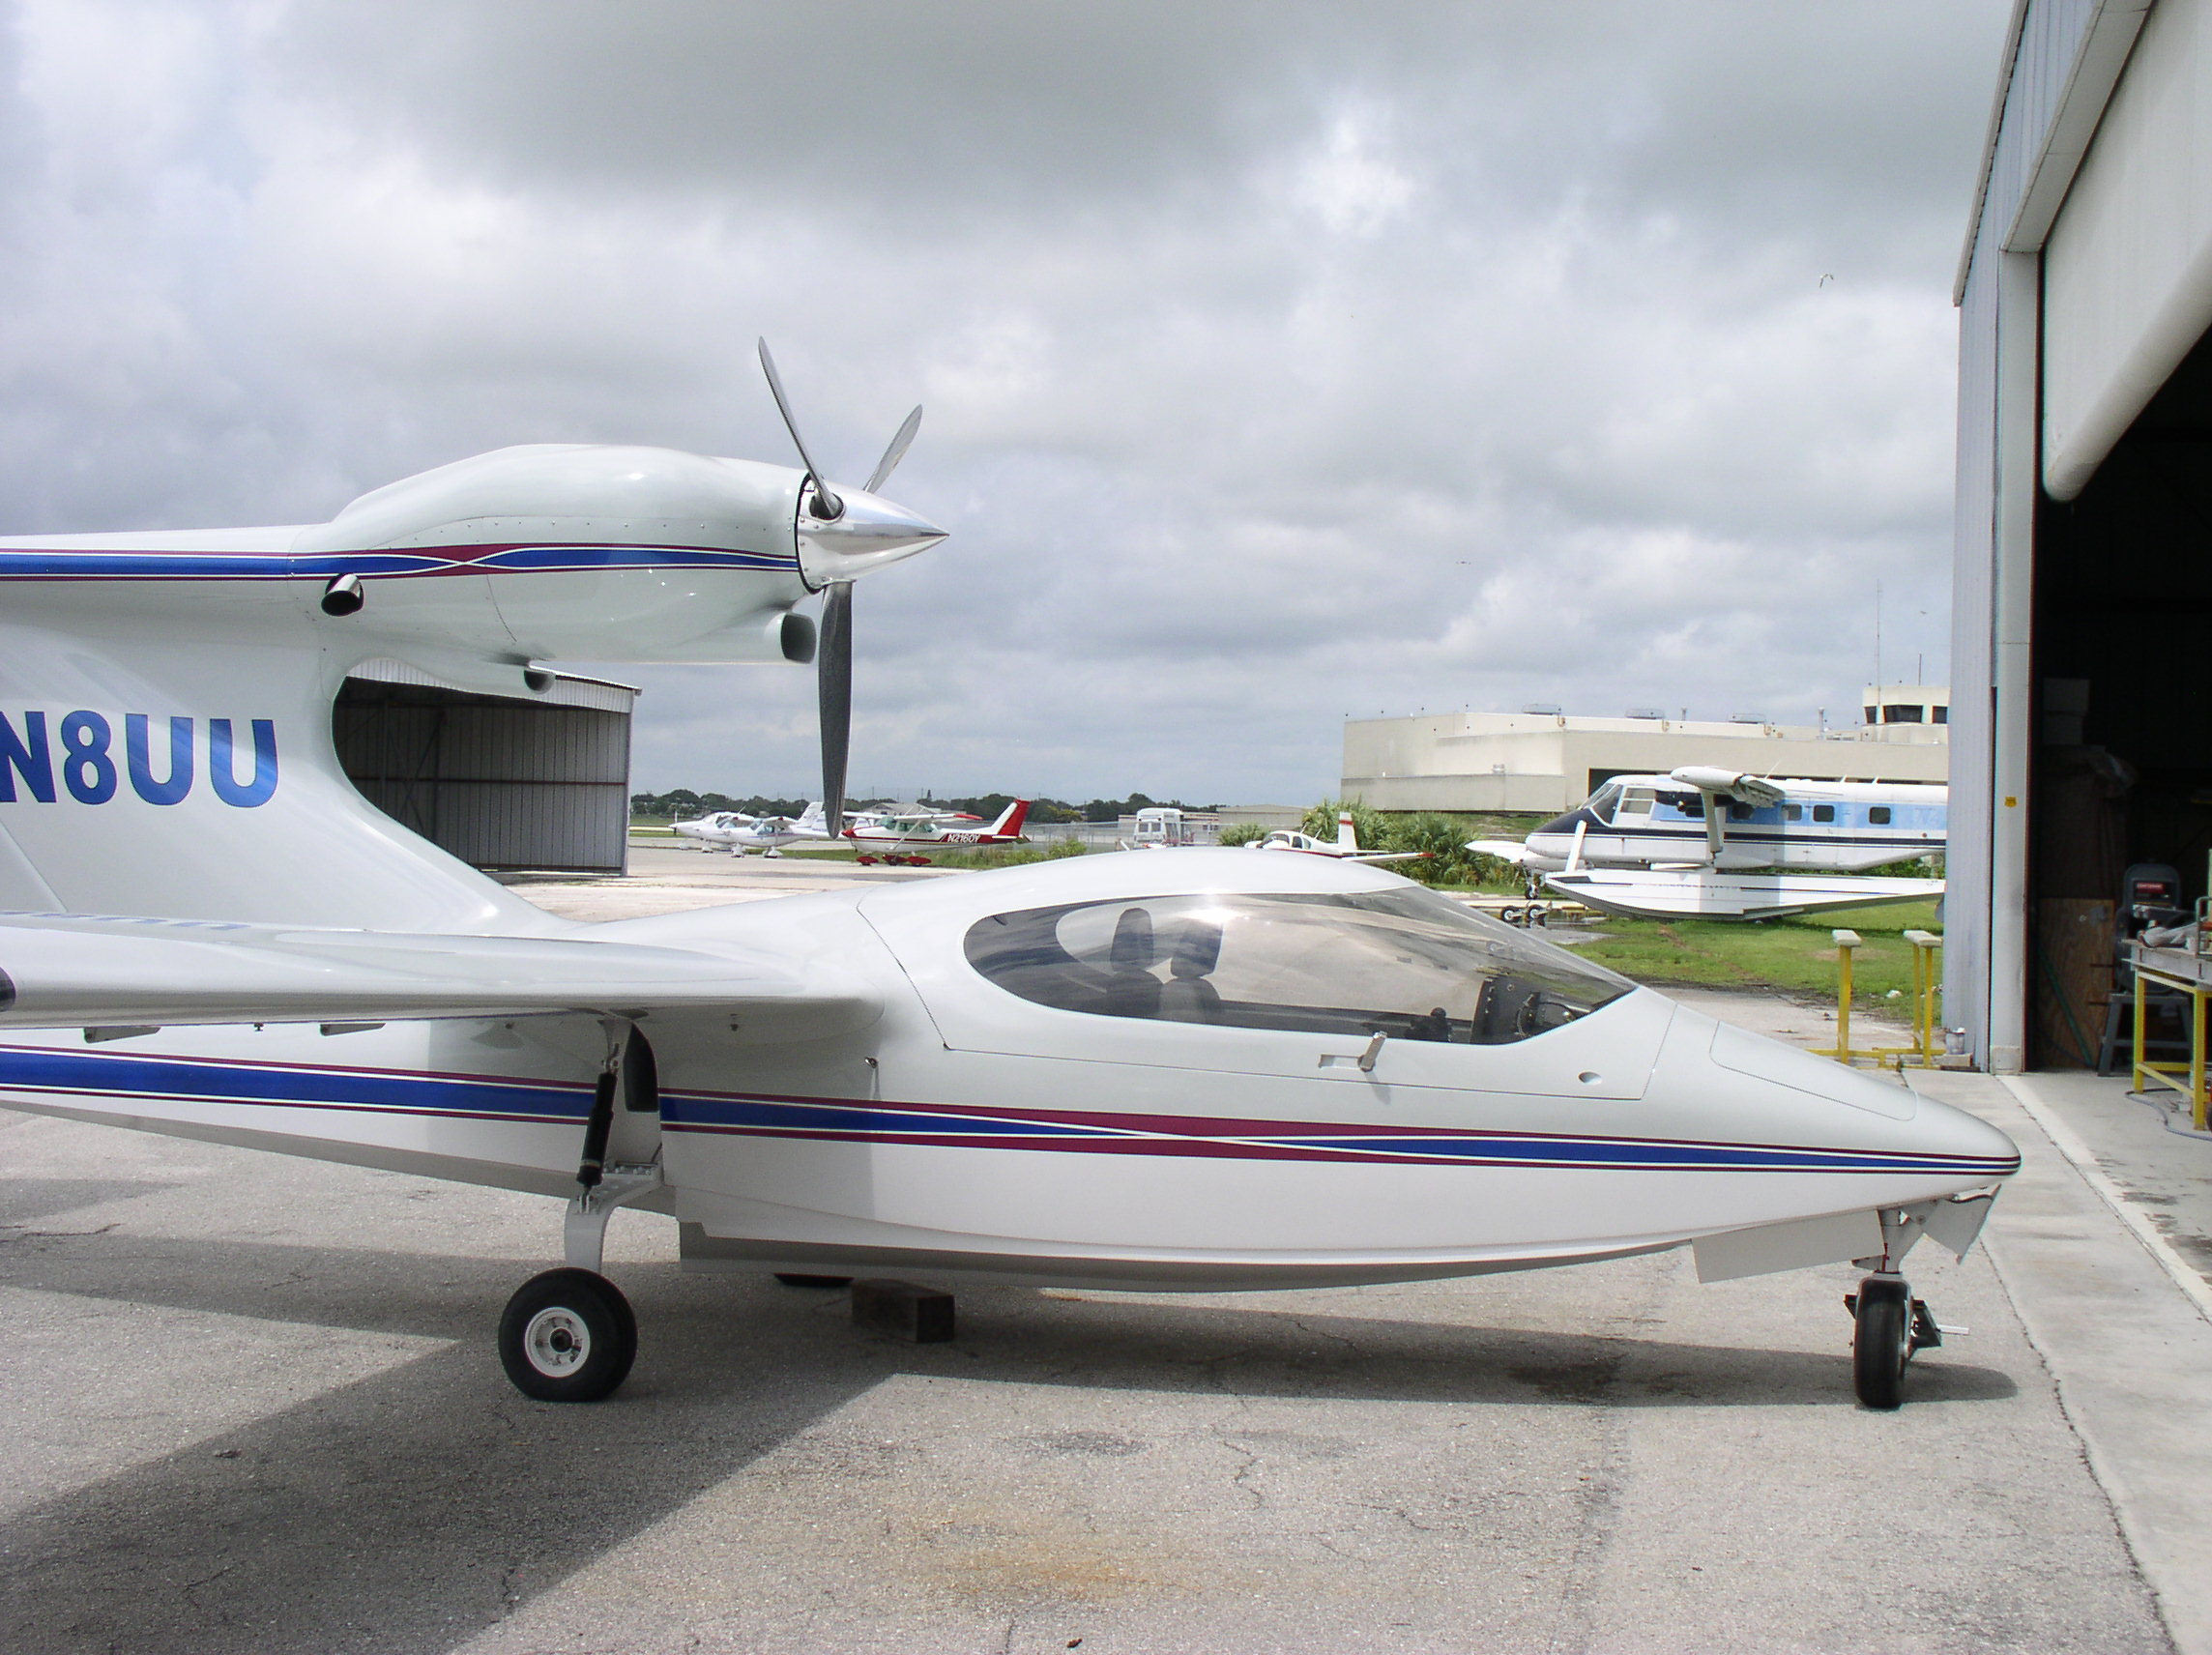 Aircraft Listing - Seawind 3000 listed for sale